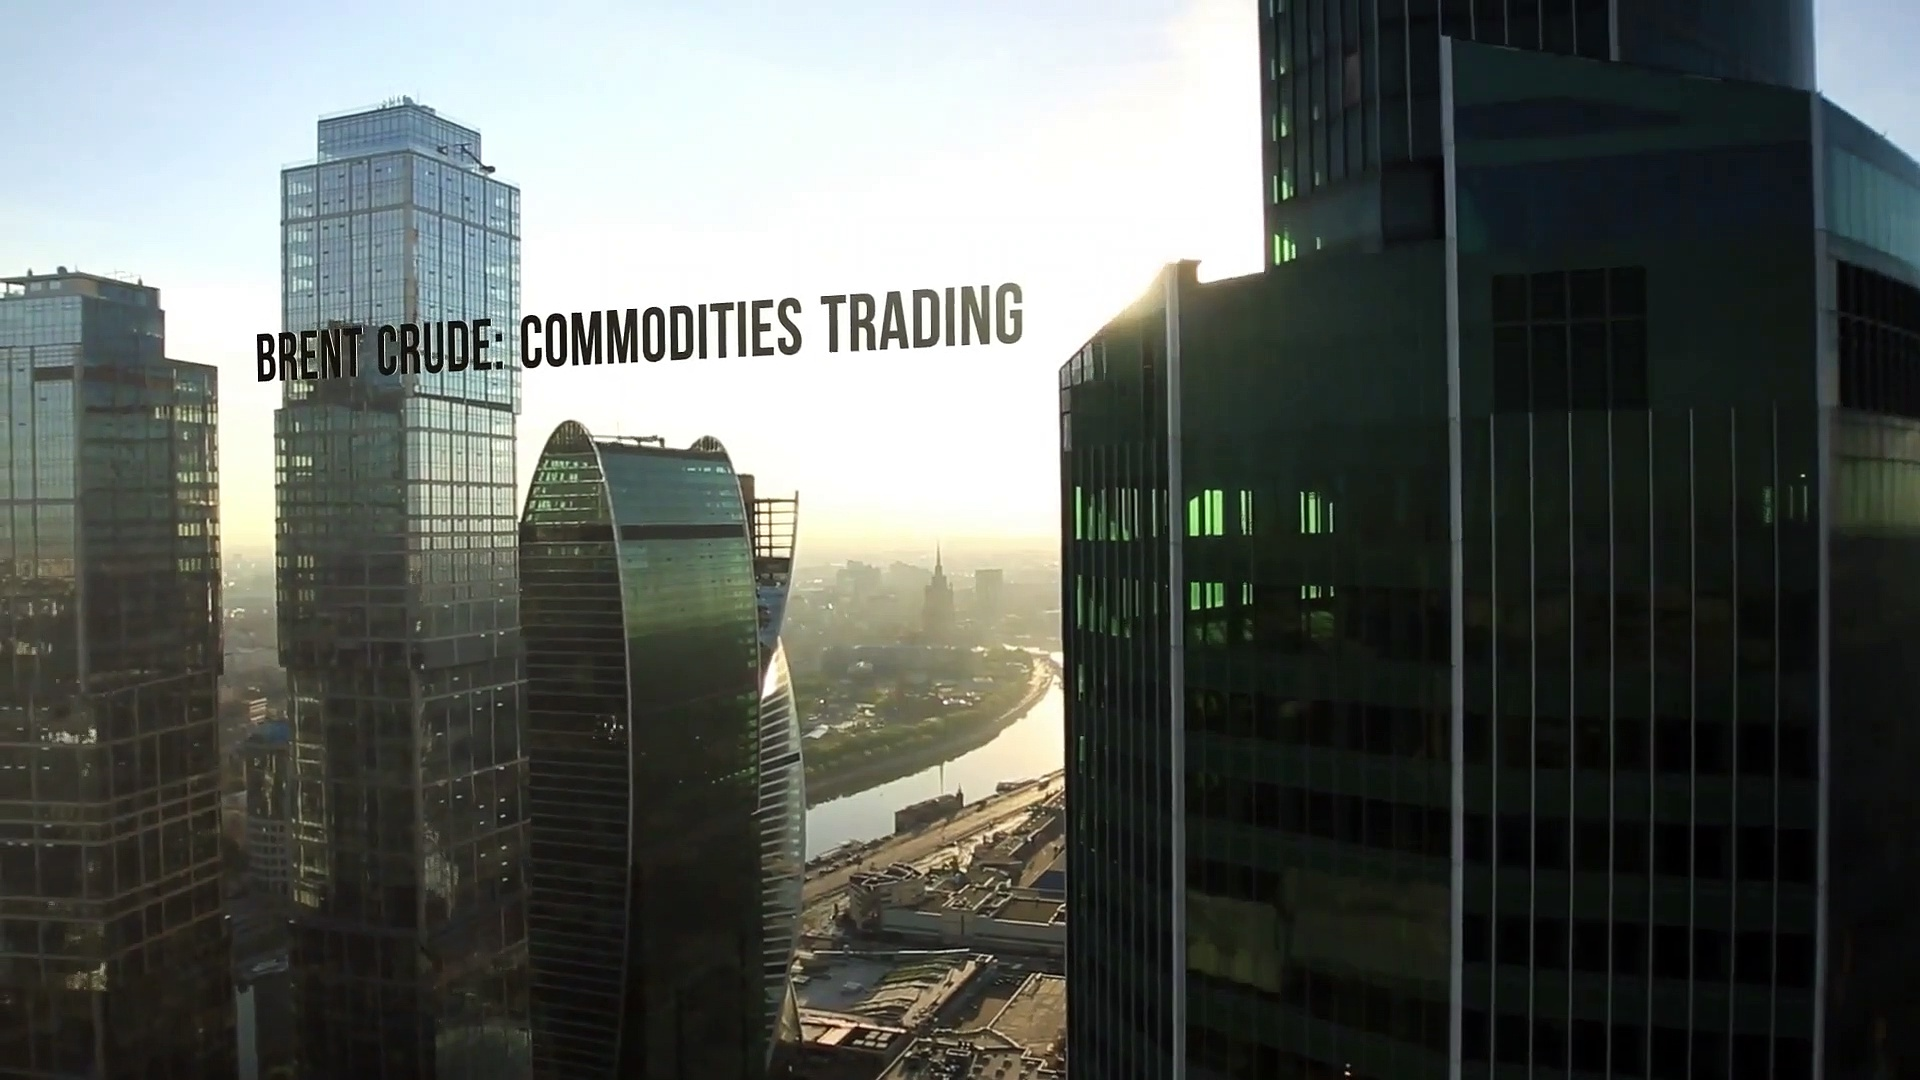 Brent Crude: Commodities Trading